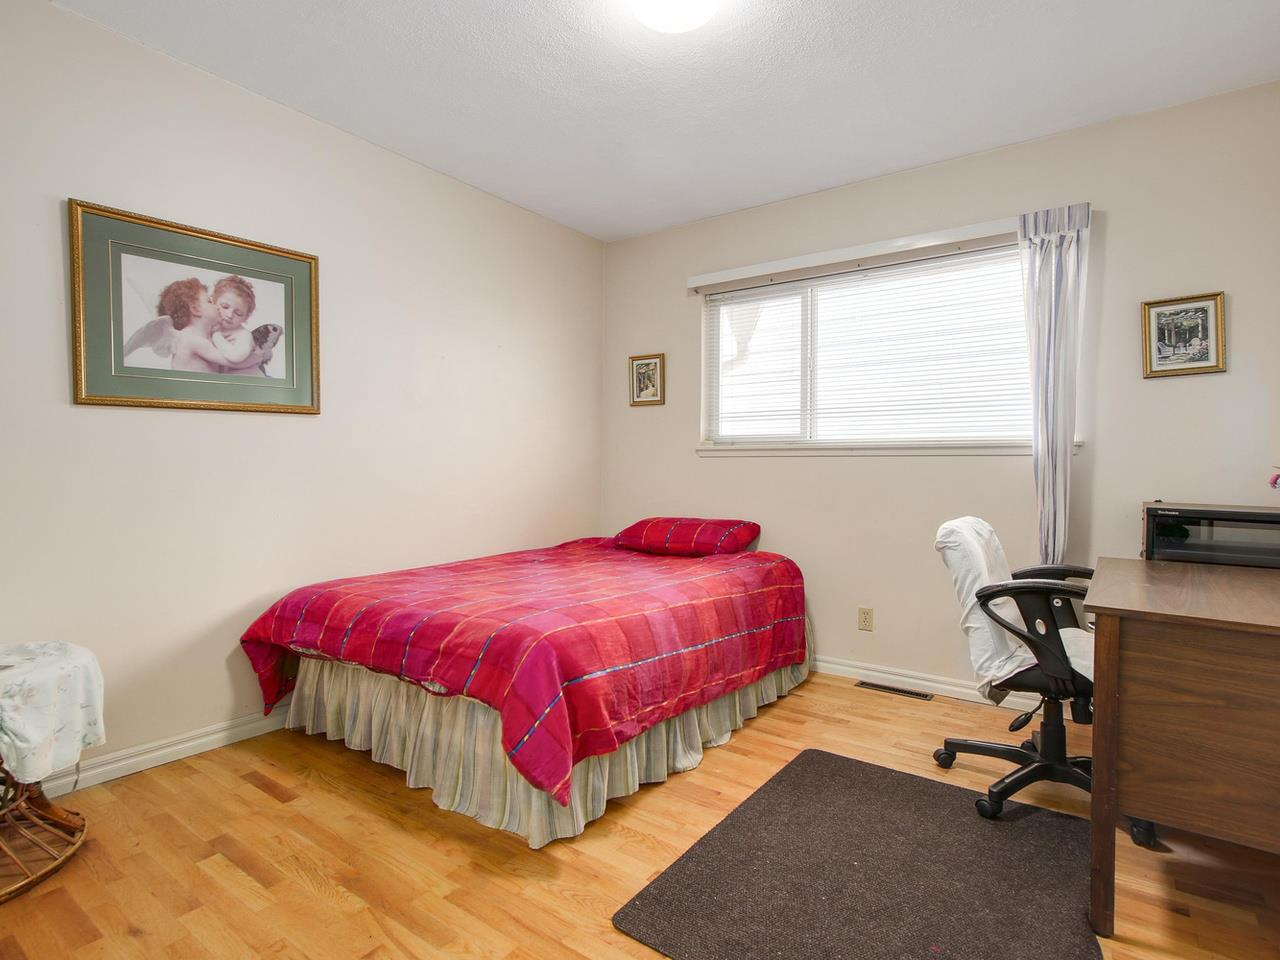 Photo 13: Photos: 1520 MACGOWAN Avenue in North Vancouver: Norgate House for sale : MLS® # R2137032